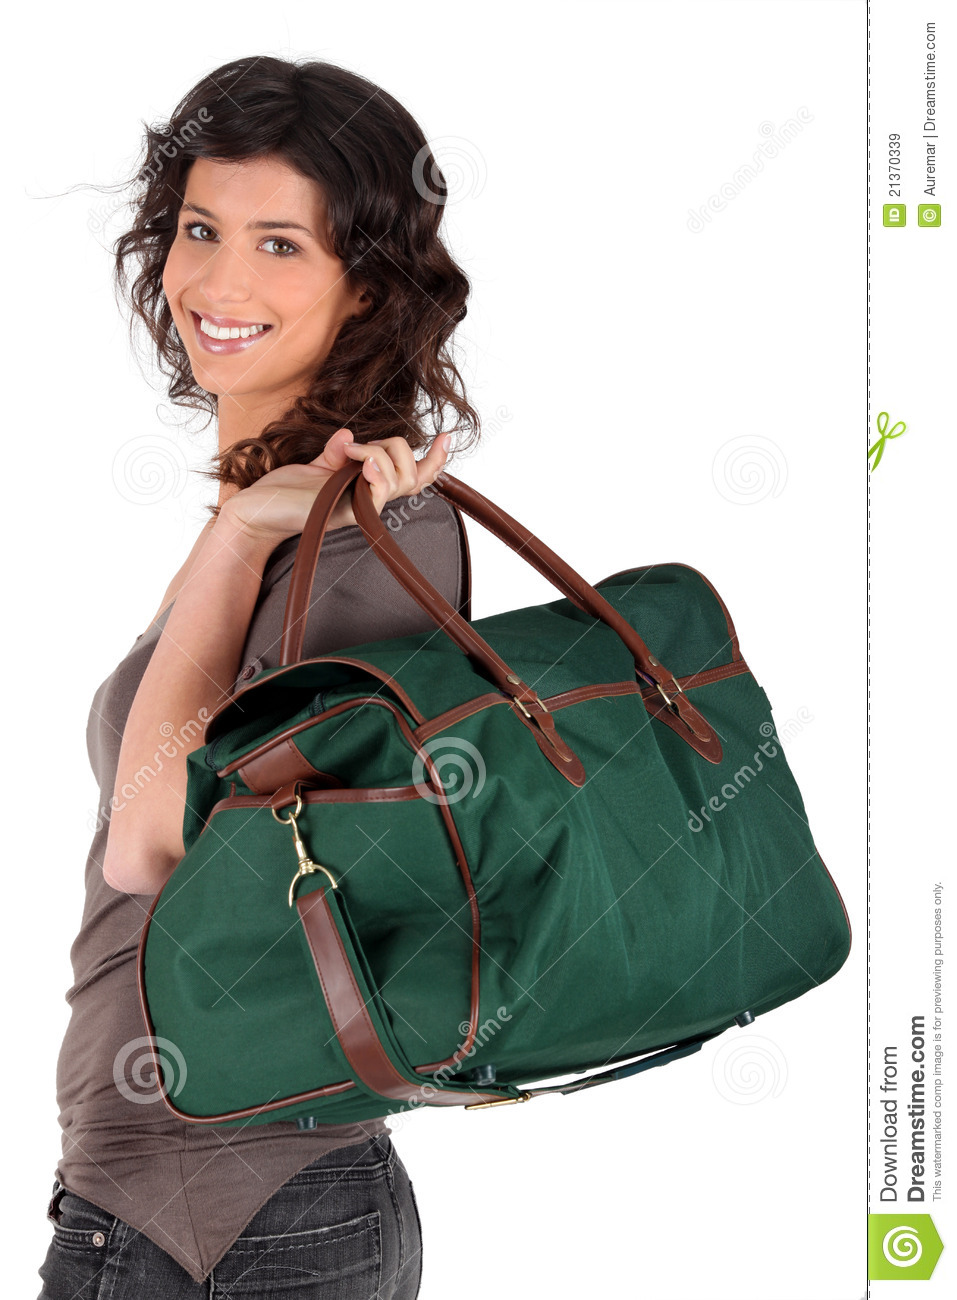 girl dating her backpack Check item availability and take advantage of 1-hour pickup option at your store change store.